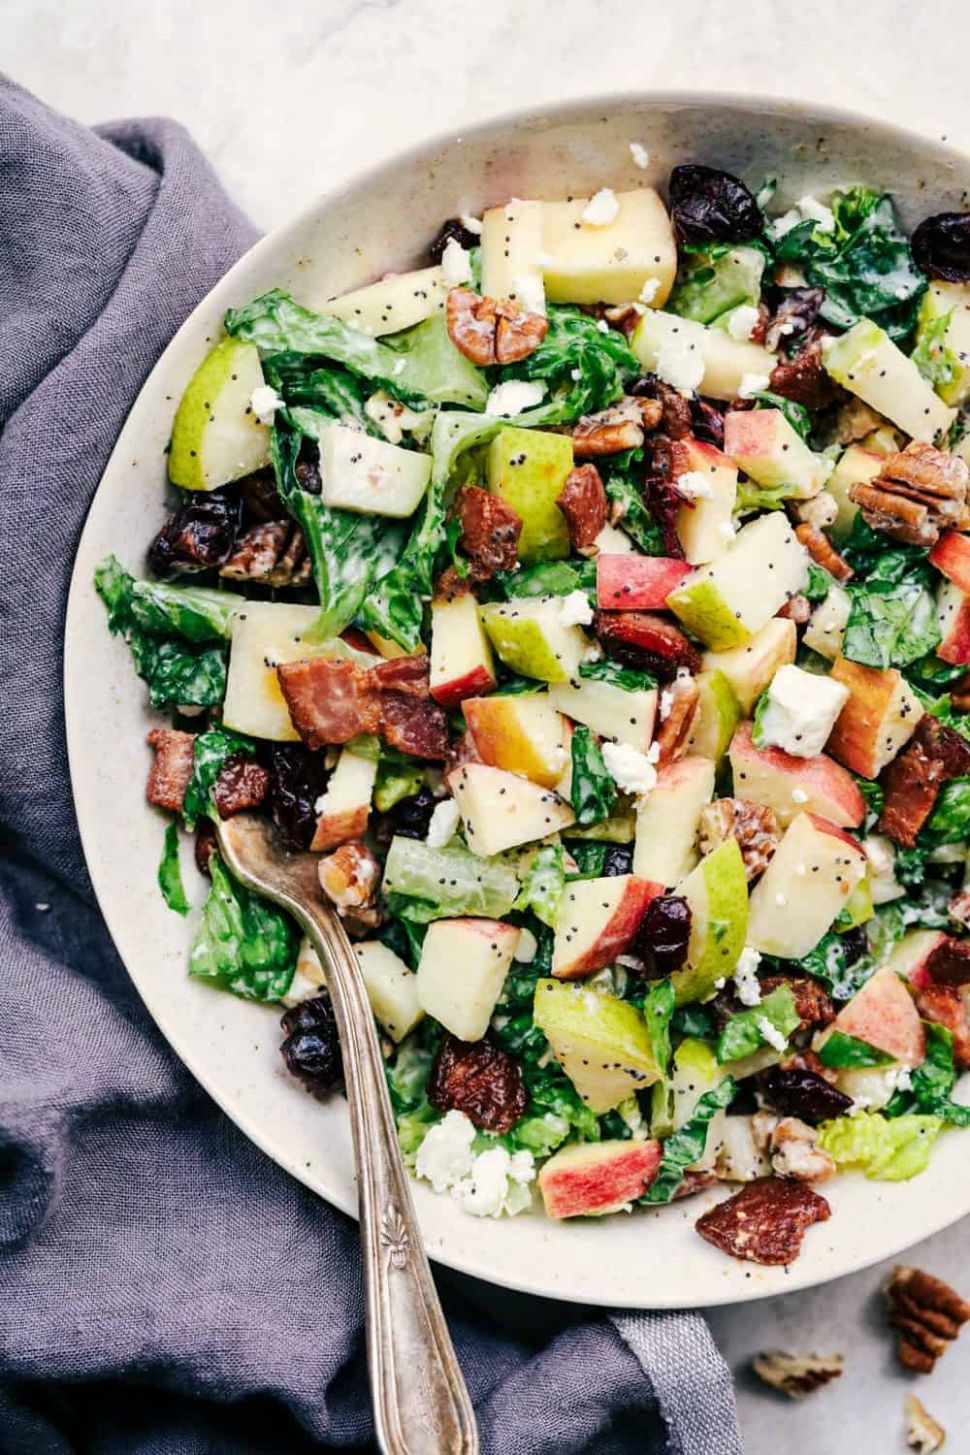 Autumn Chopped Salad with Creamy Poppyseed Dressing